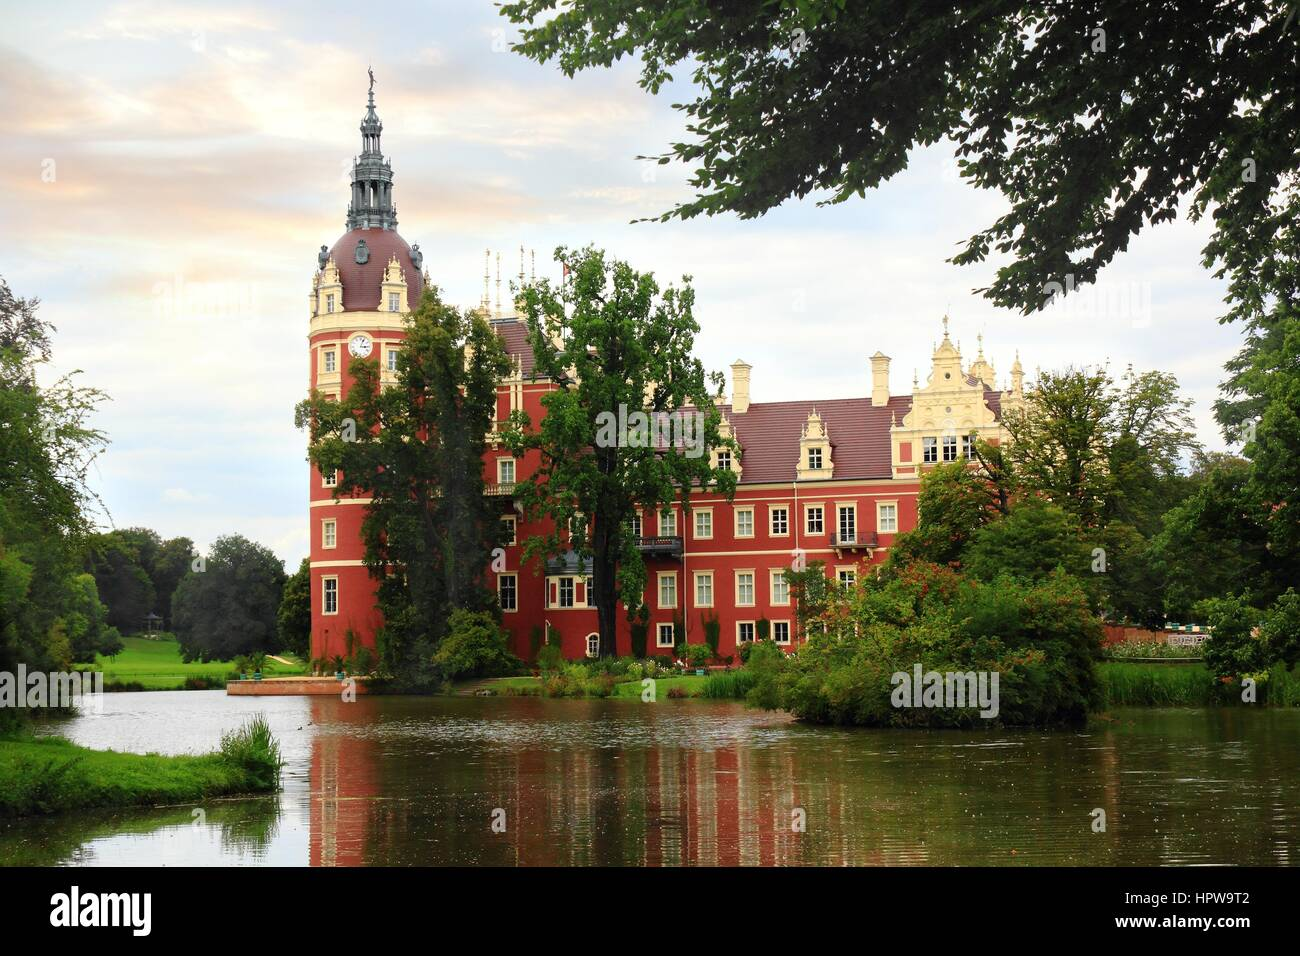 Palace In Bad Muskau Park Germany